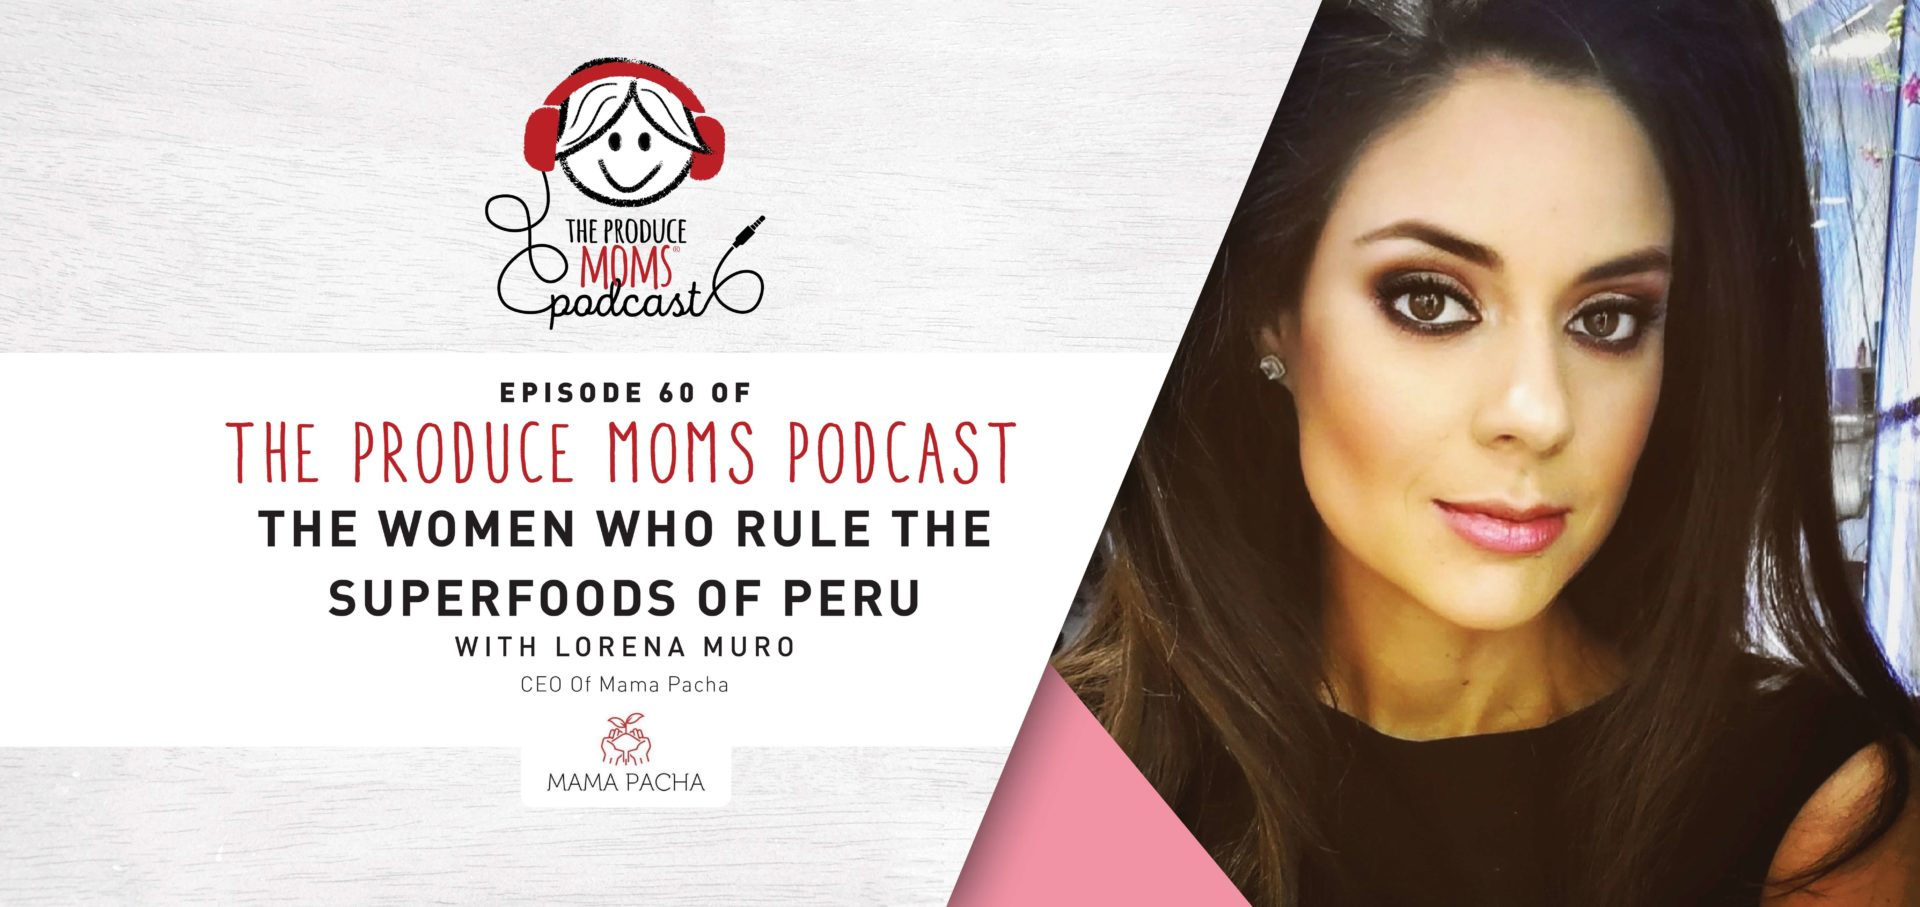 Episode 60: The Women Who Rule the Superfoods of Peru